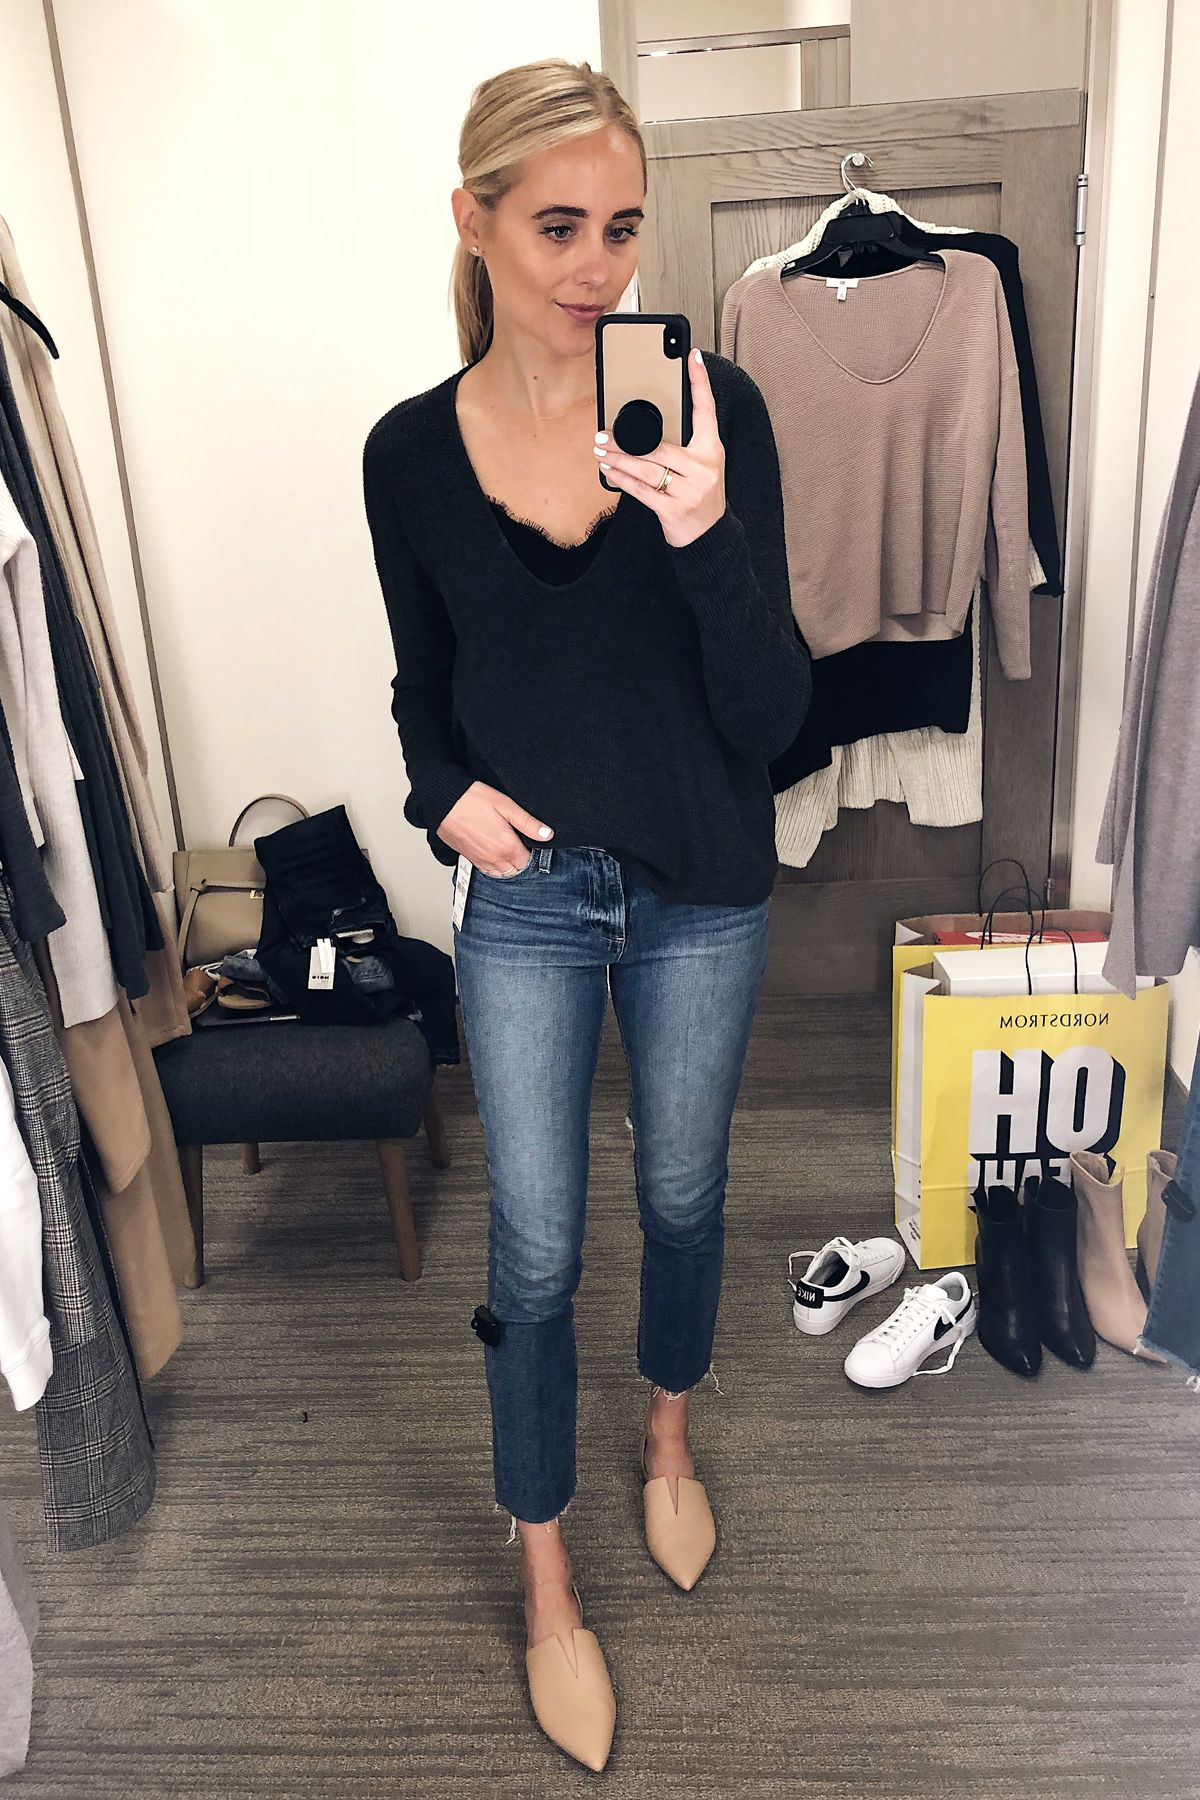 531a1f609f ... Nordstrom Anniversary Sale Textured Stitch V-neck Pullover BP Nordstrom  Black Lace Cami Paige Raw Hem Jeans Vince Darlington Flats Fashion Jackson  San ...